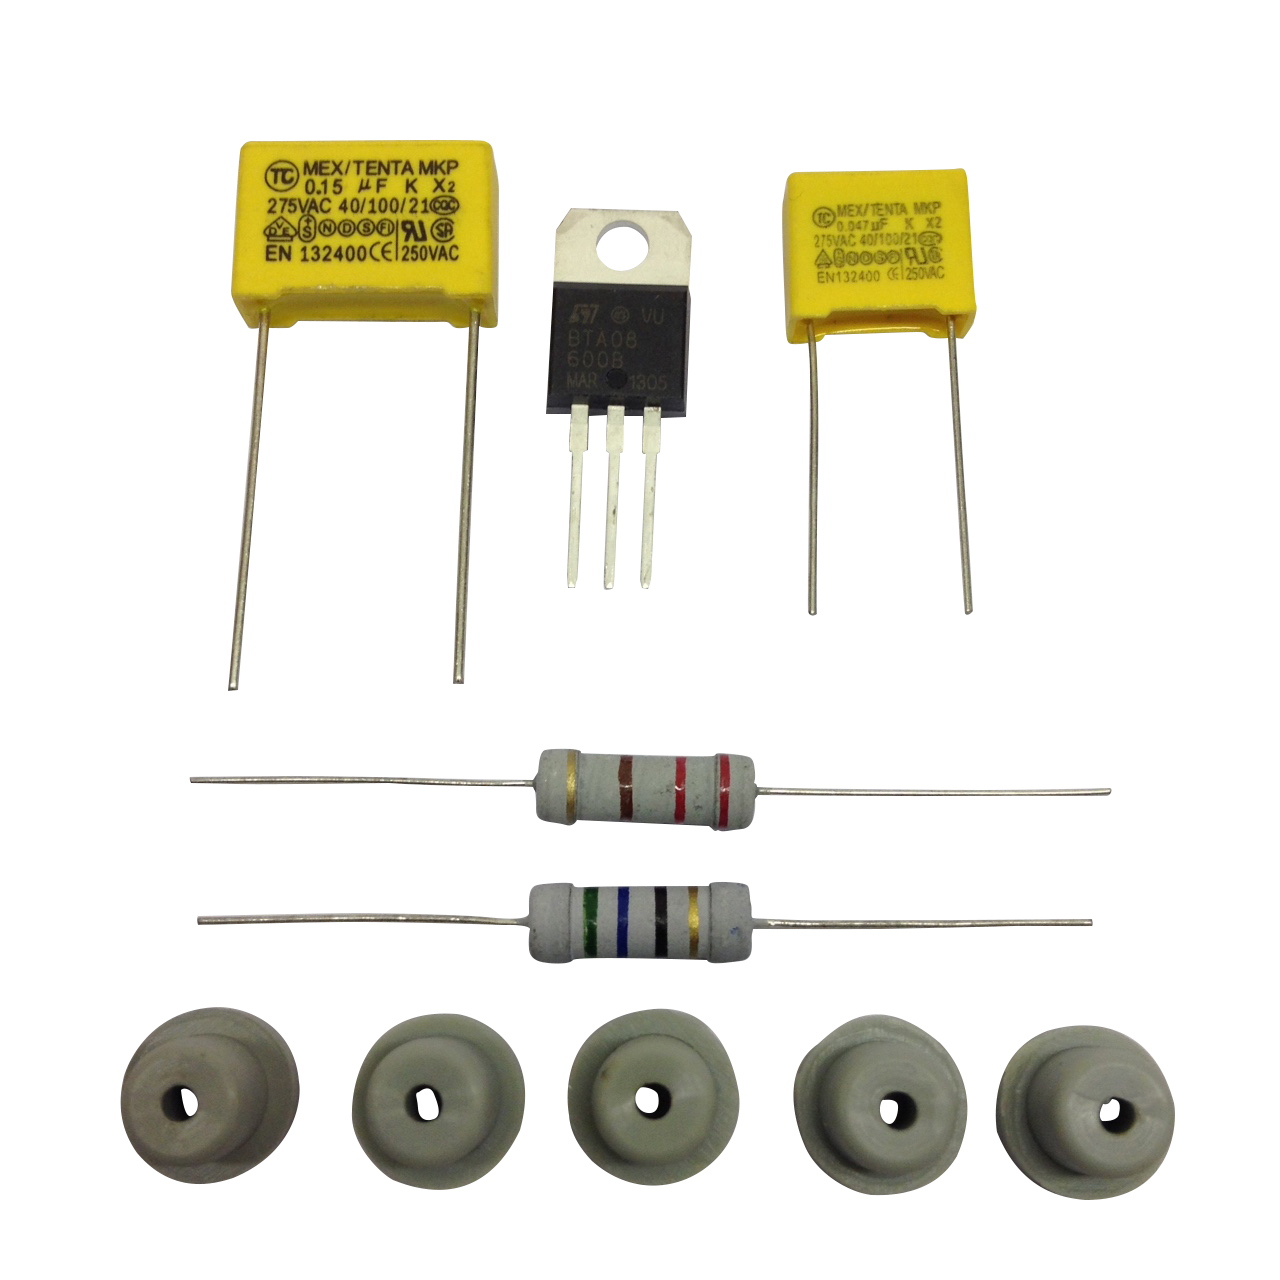 Kenwood Chef Amp Major A901 A901p 907 Motor Repair Kit With